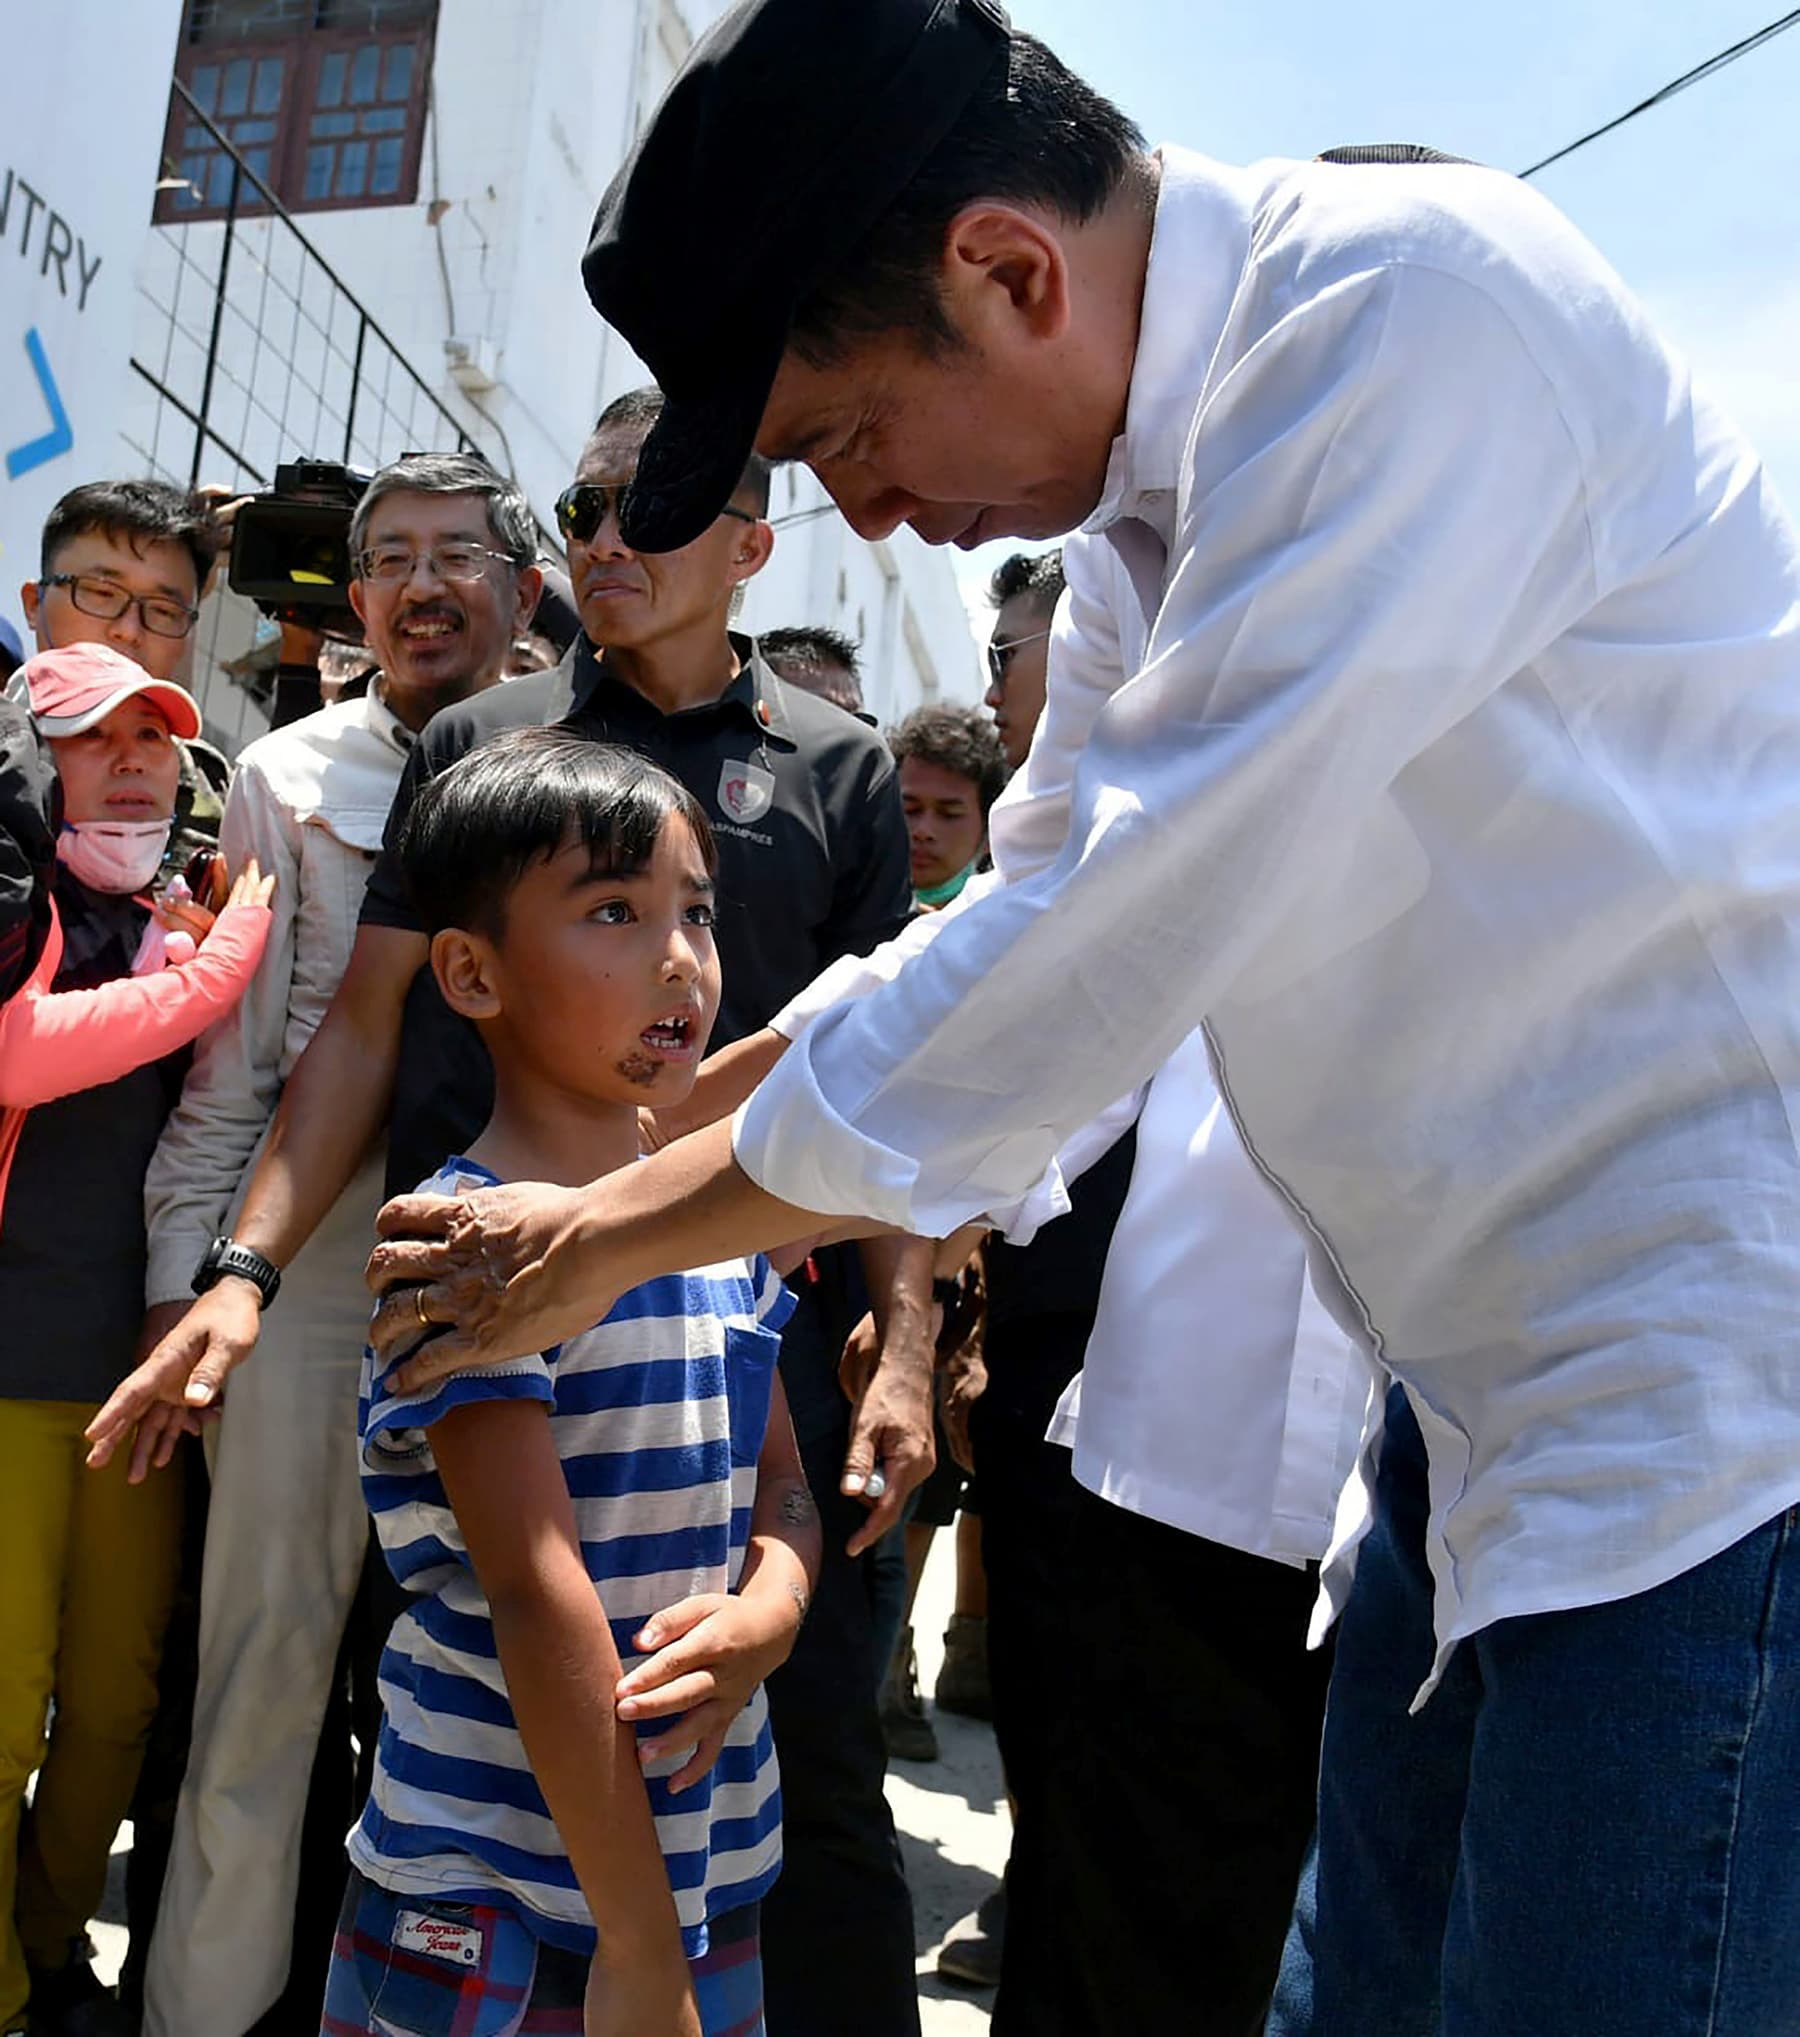 Indonesia's President Joko Widodo meeting a boy who survived the September 28 earthquake and tsunami in Palu in Central Sulawesi. — AFP